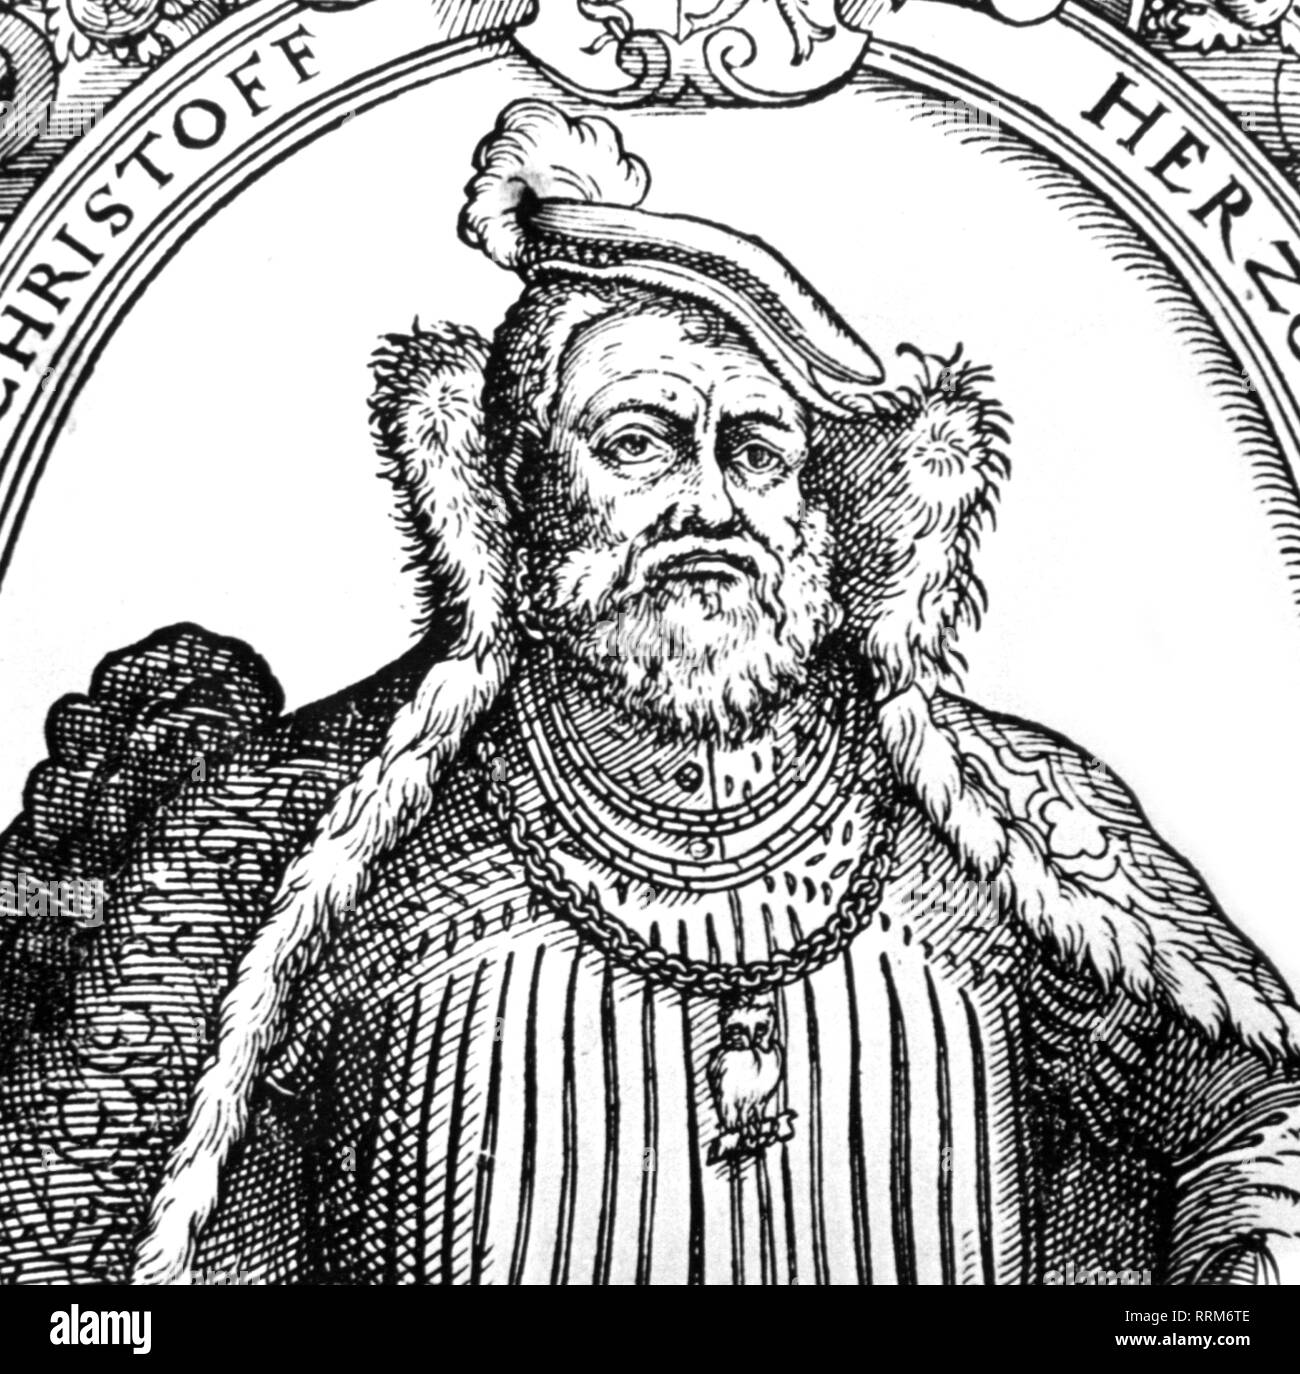 Christoph, 12.5.1515 - 28.12.1568, Duke of Wuerttemberg 6.11.1550 - 28.12.1568, portrait, woodcut, 16th century, detail, Additional-Rights-Clearance-Info-Not-Available - Stock Image